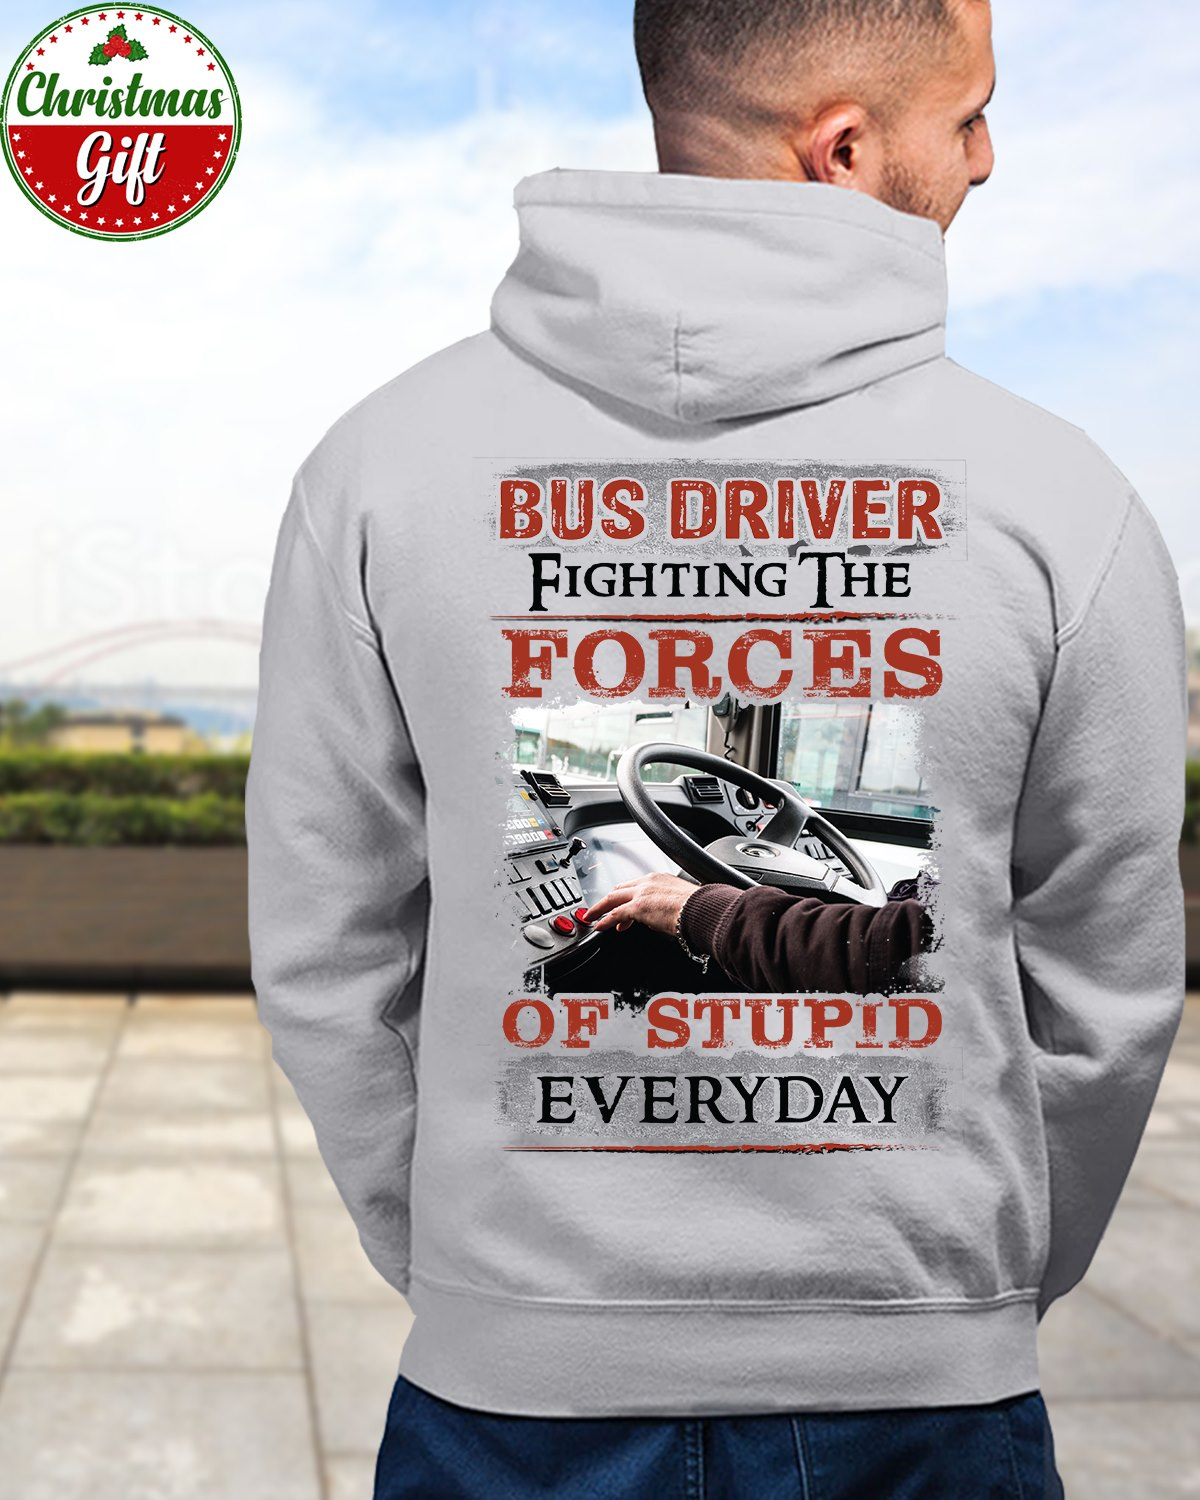 Bus Driver Fighting The Forces Of Stupid Everyday Shirt